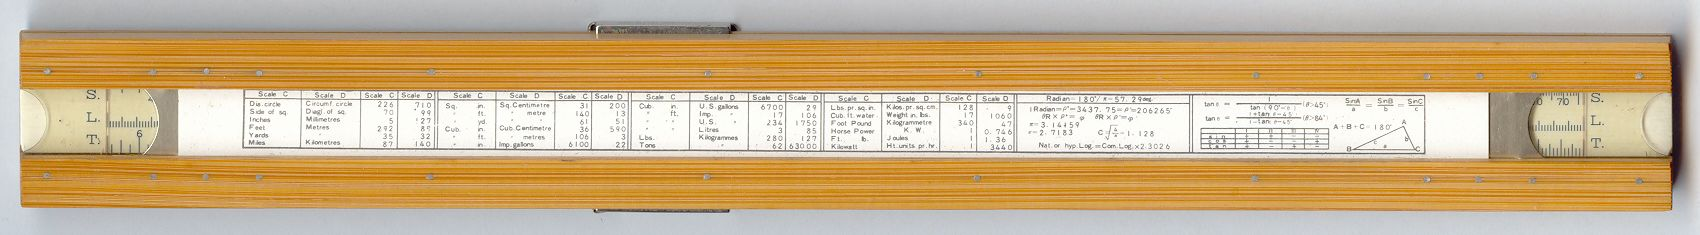 dating post slide rules This selected slide rules section offers a very nice selection of mainly new slide rules of many types,  representing the post wwii, chairman mao era in china.